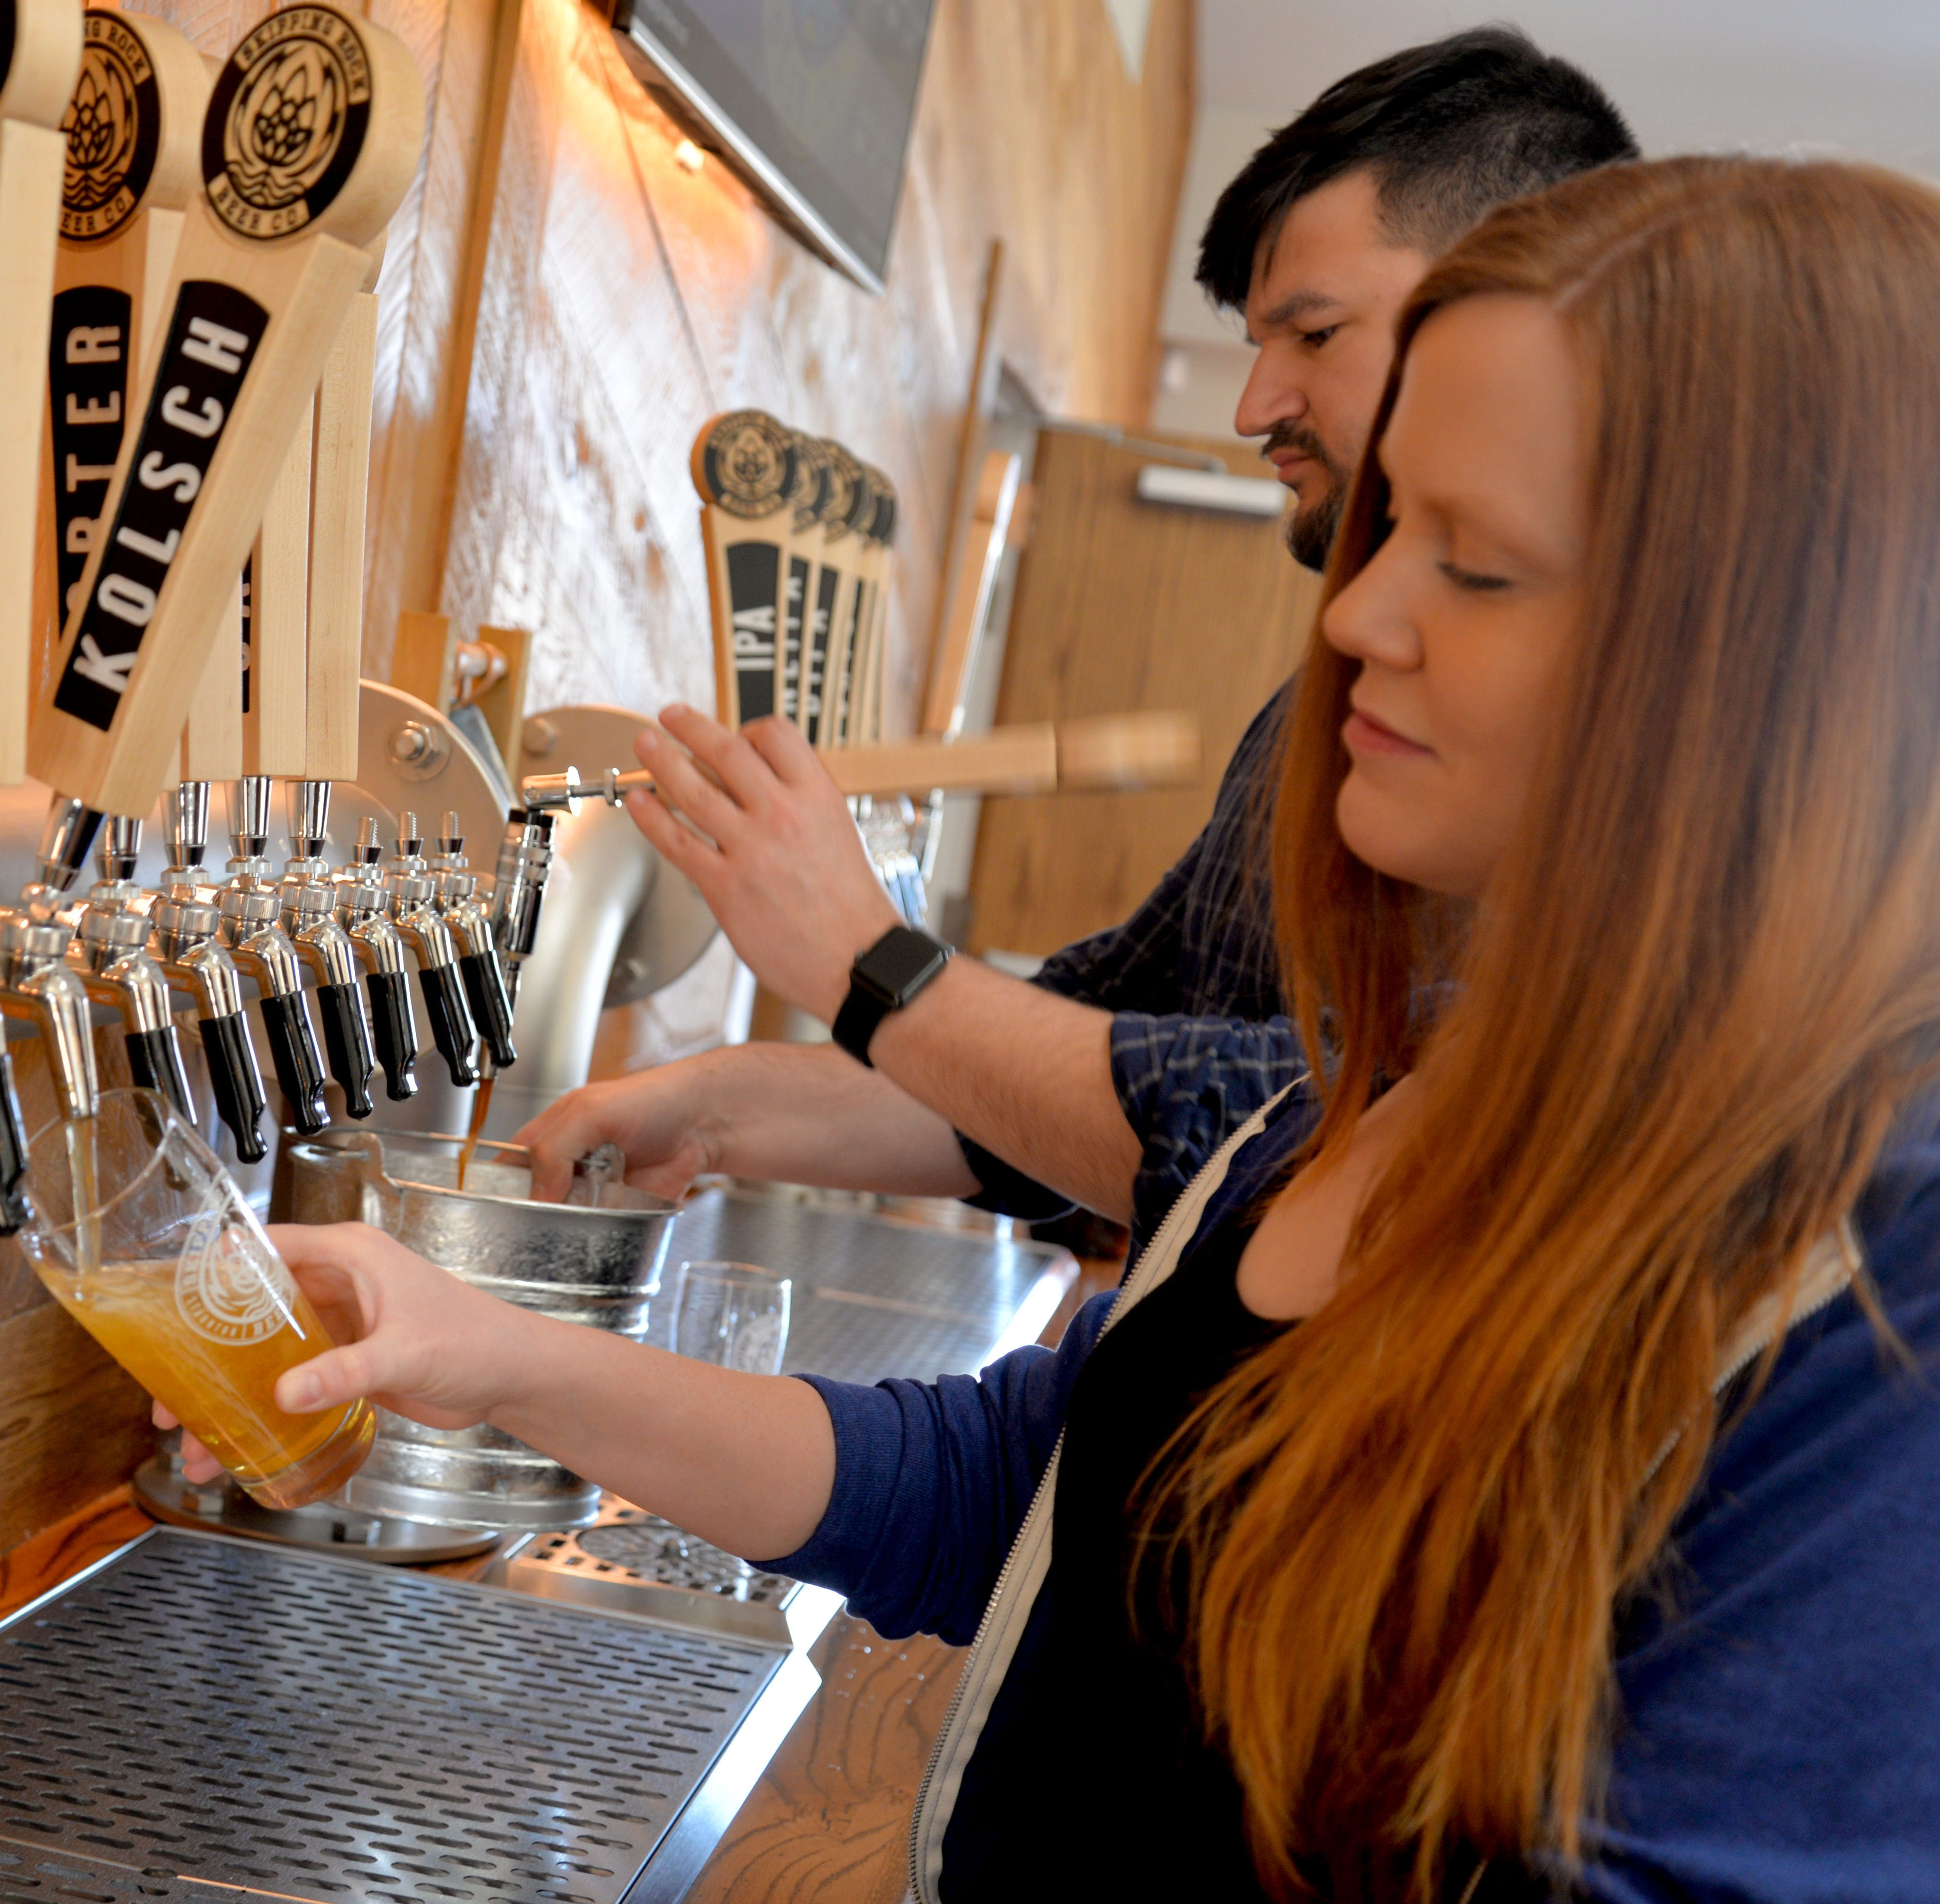 County's newest brewery Skipping Rock set to open mid-March west of Staunton